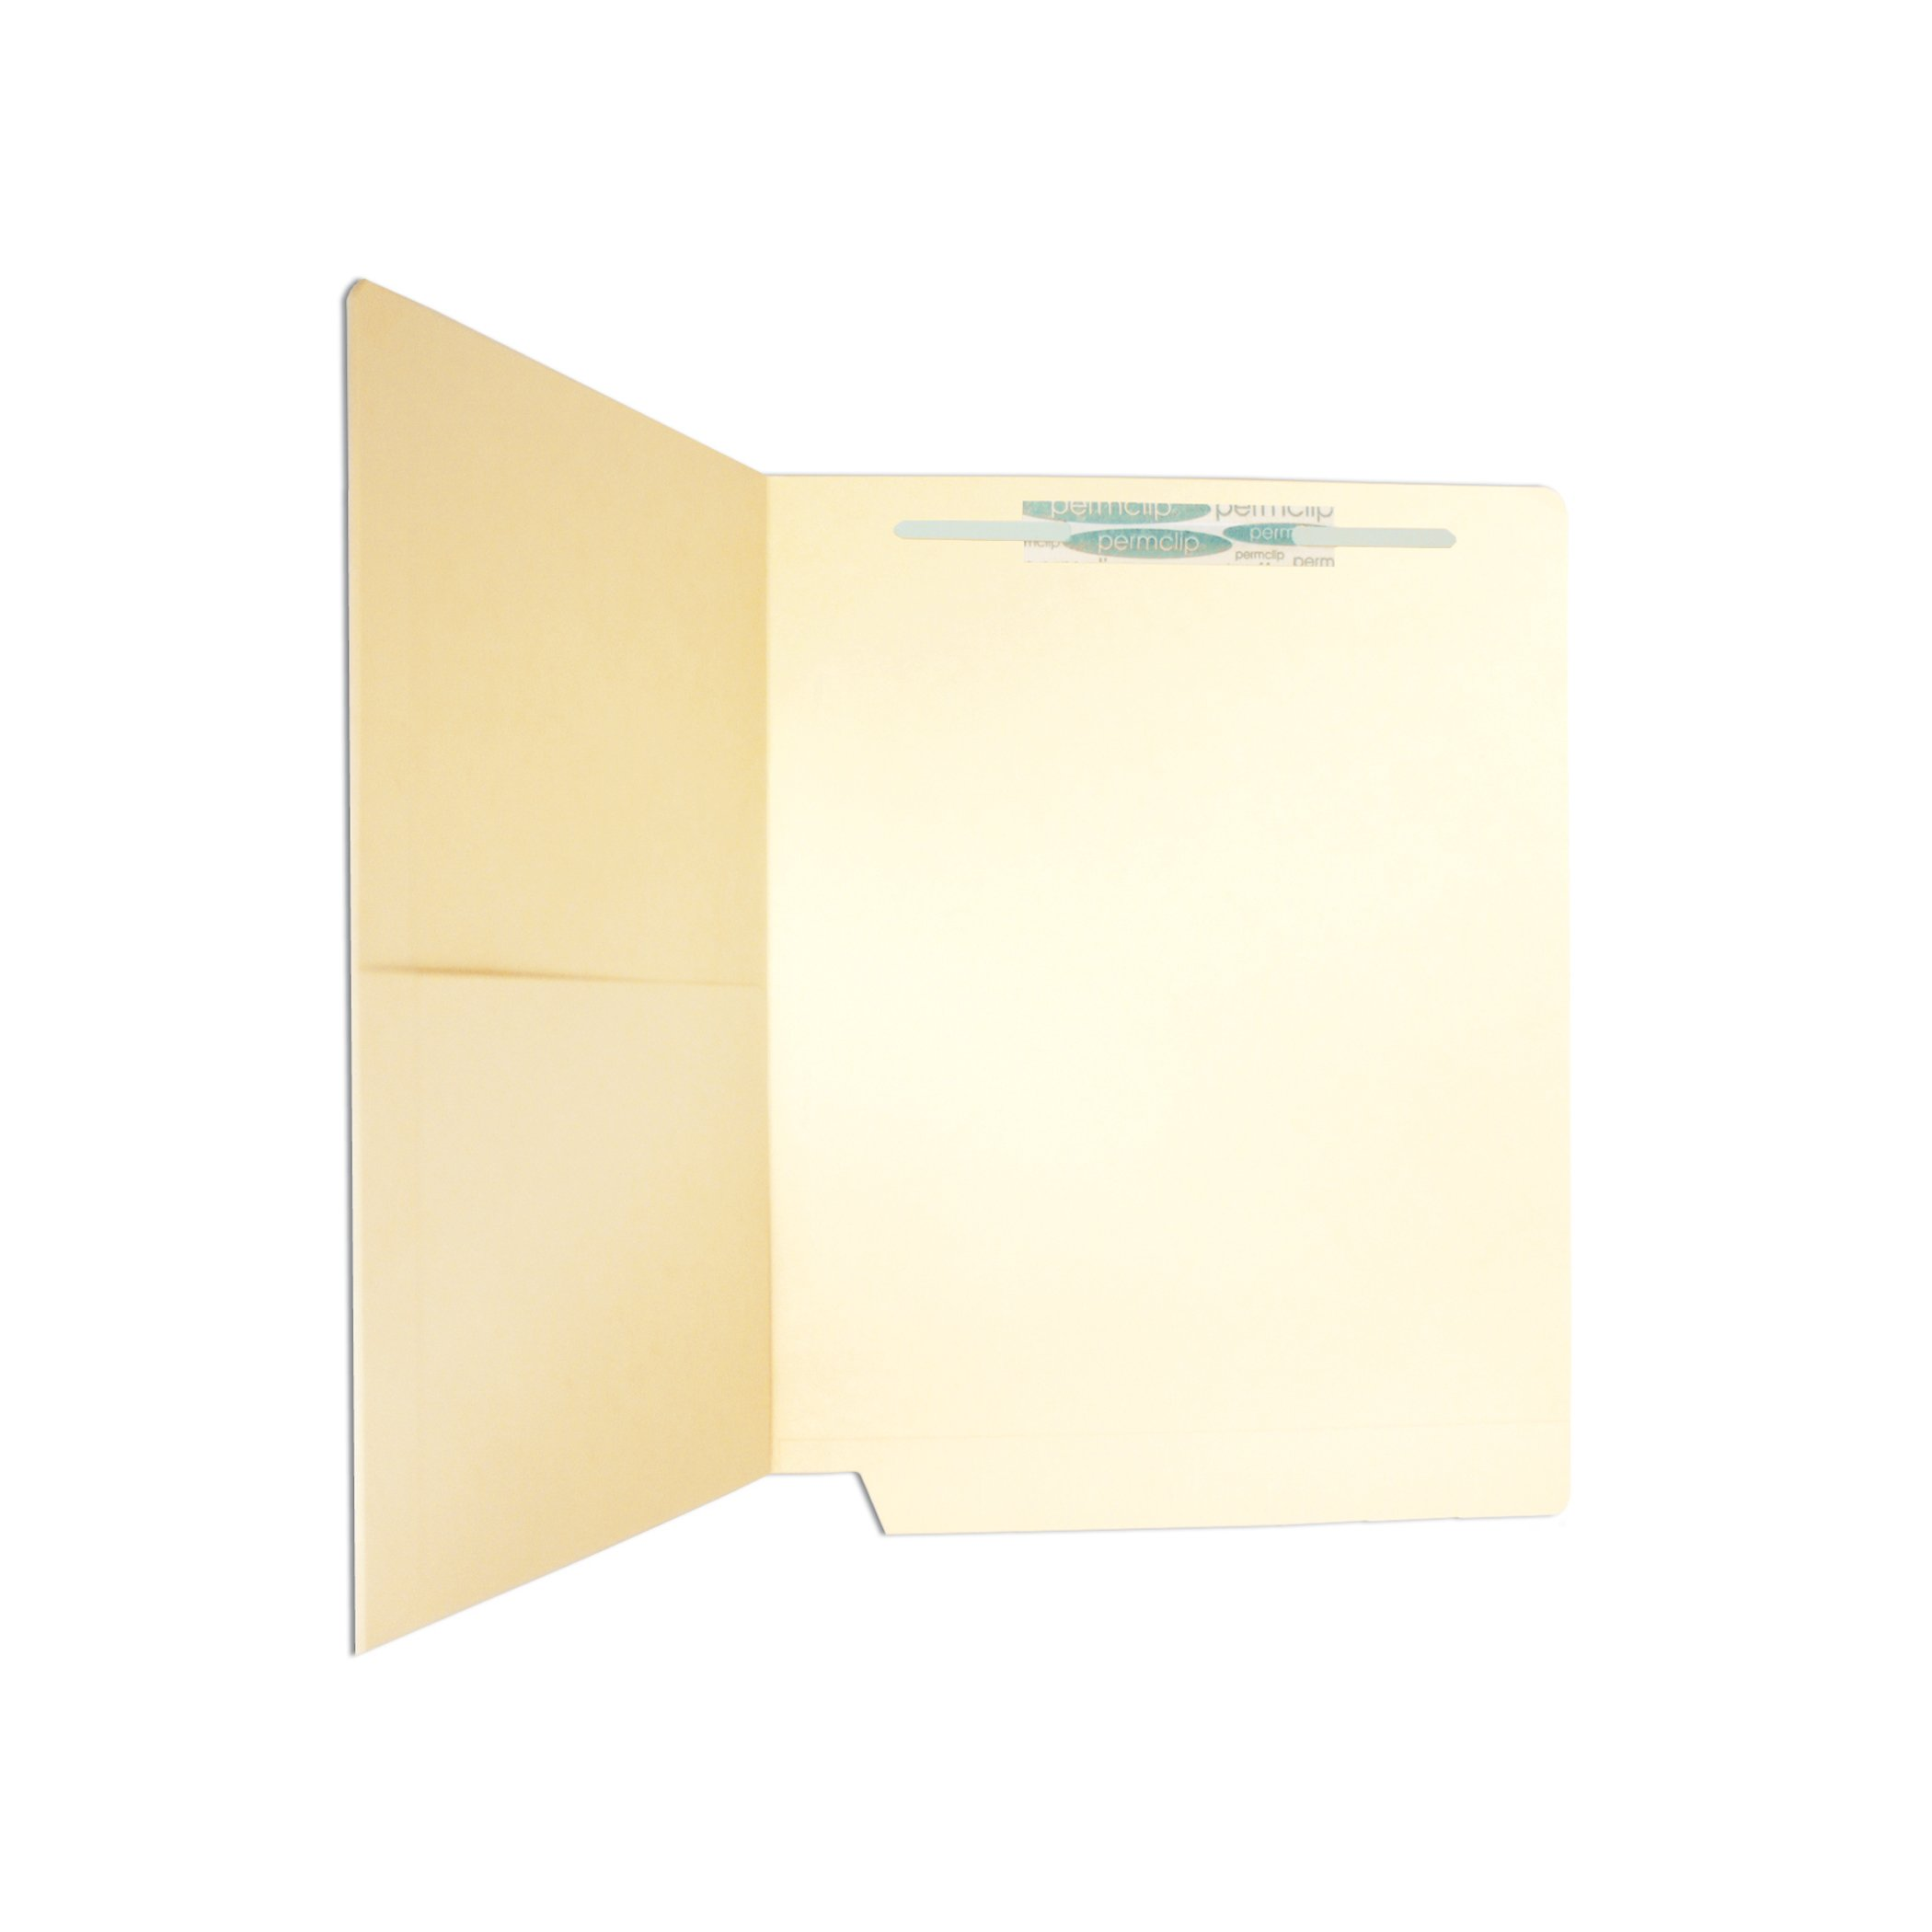 Medical Arts Press Match 11pt Manila End Tab Pocket Folders with 1 Permclip Fastener- Drop Front, Letter Size (250/Carton)